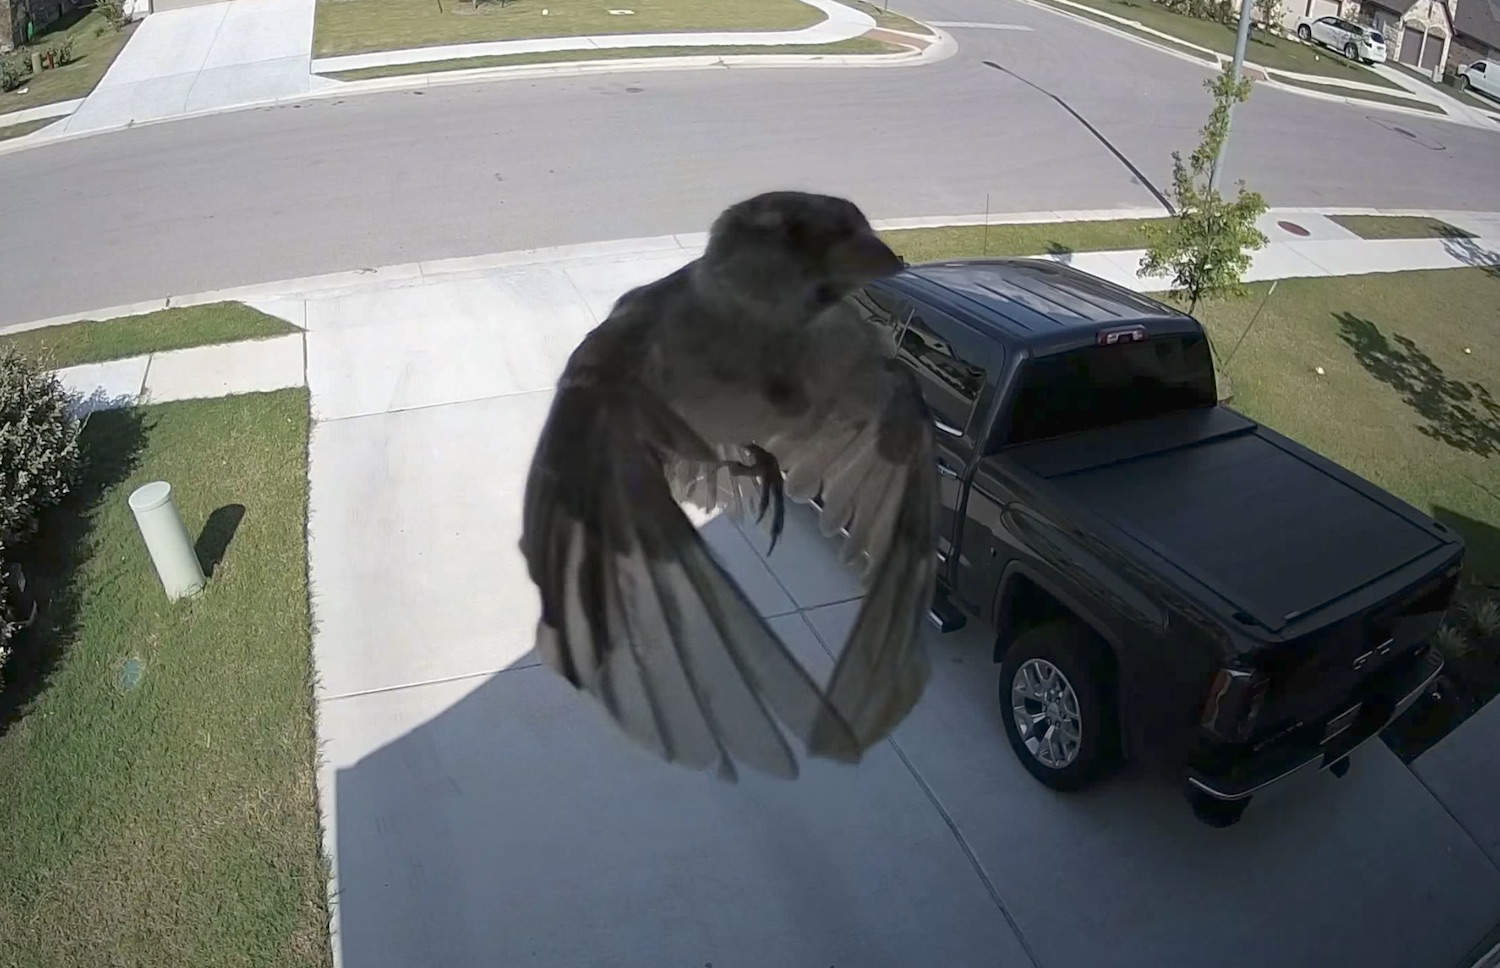 This is what happens when your camera's frame rate matches a bird's